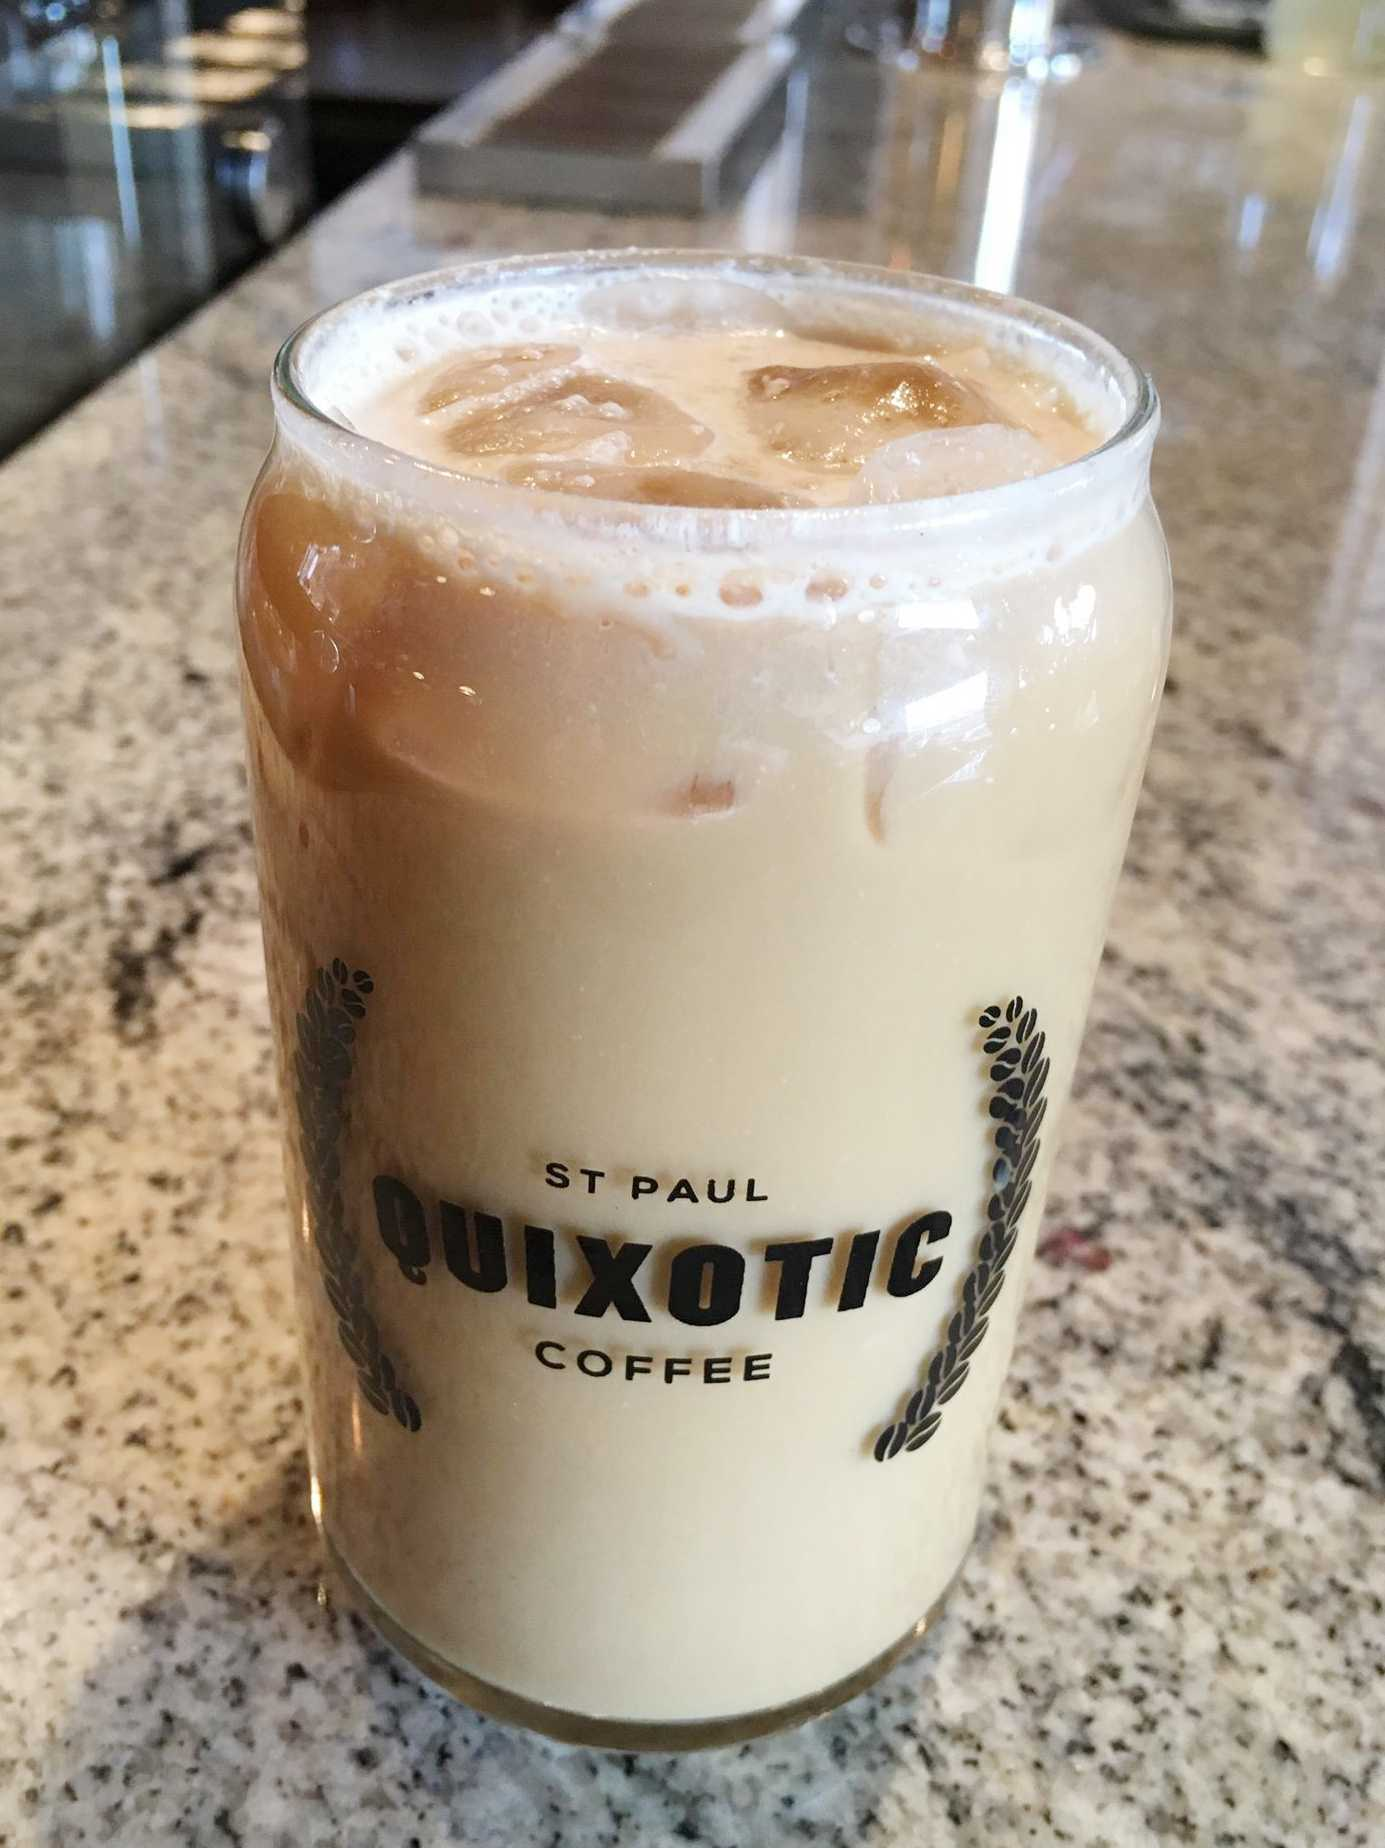 An icy caramel drink from Quixotic Coffee in St. Paul. Photo by Anna Hestad '19